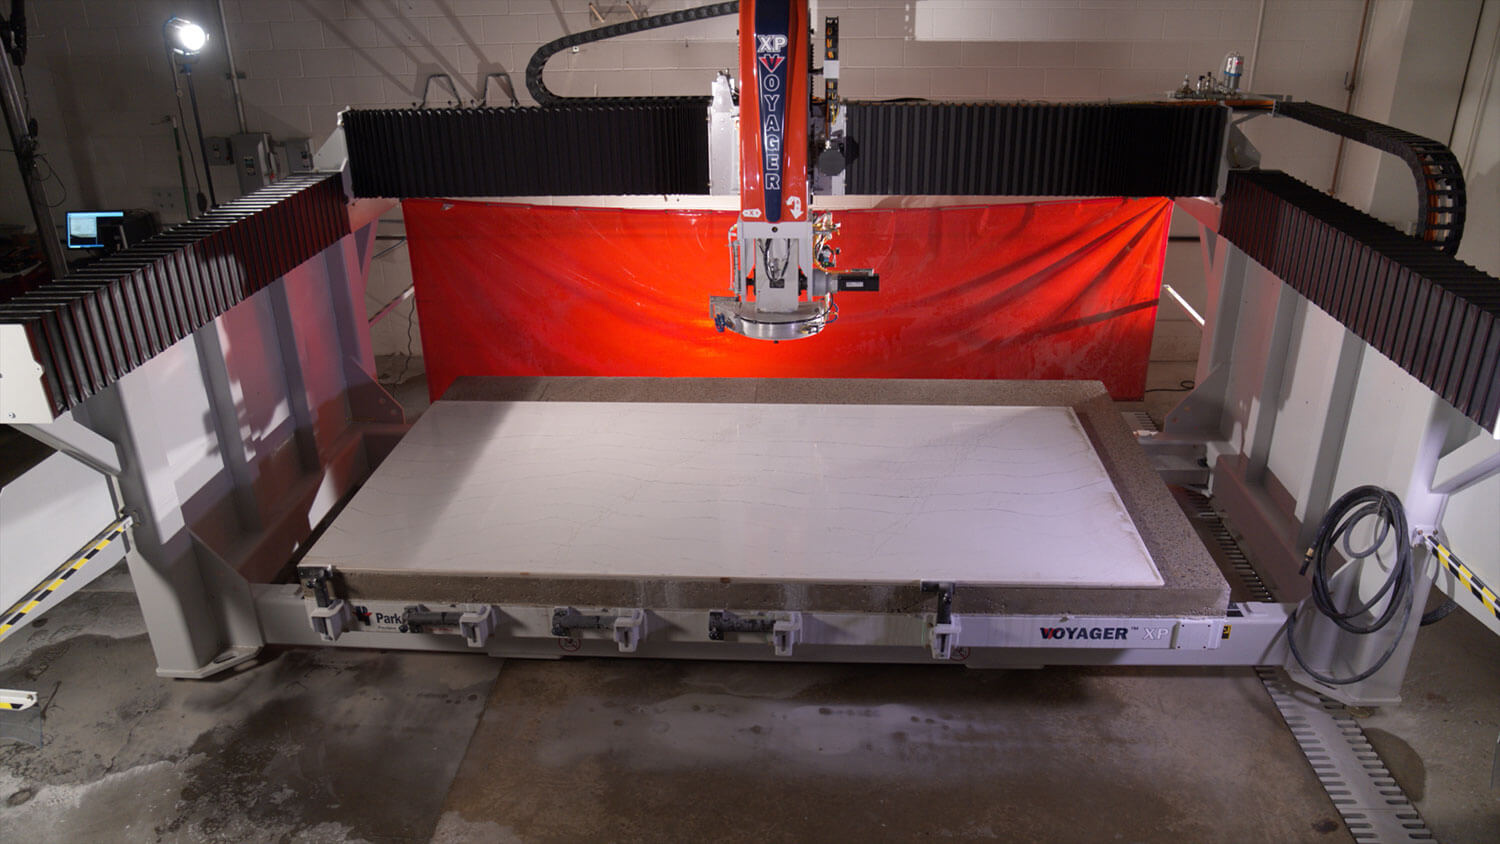 VOYAGER XP 5-Axis CNC Saw for Stone Cutting